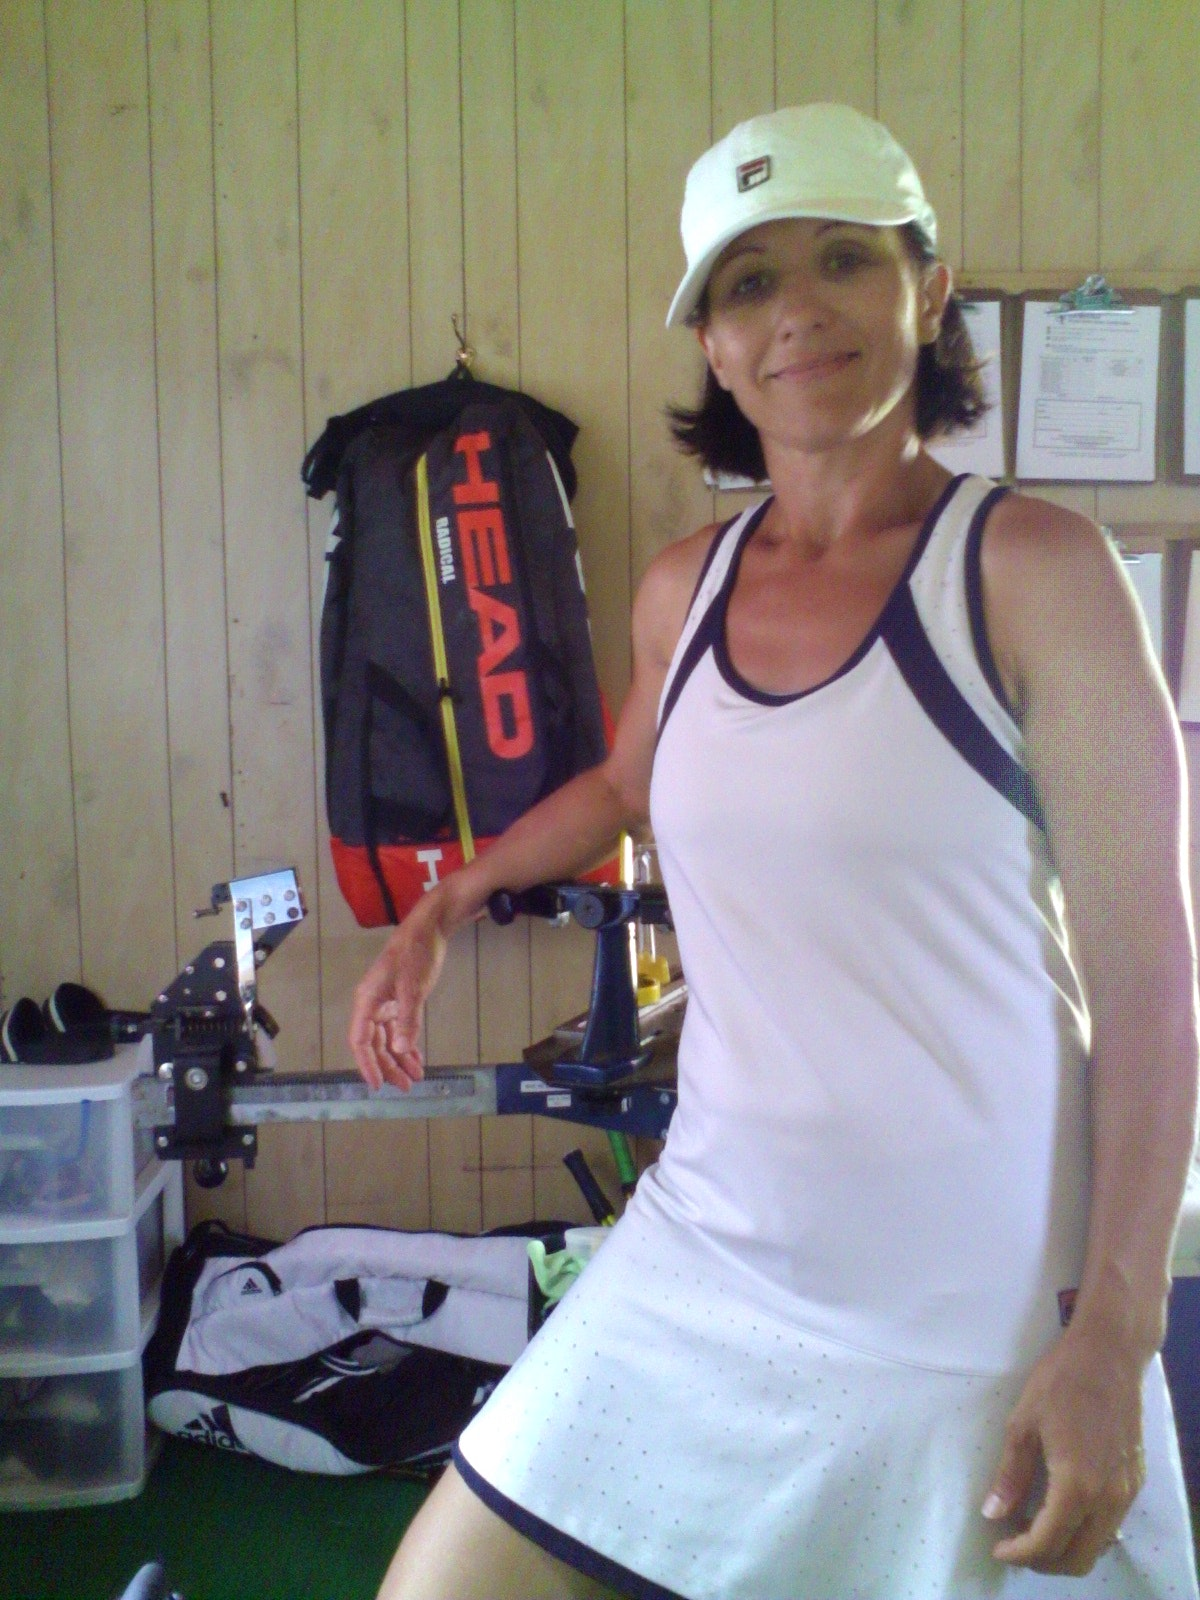 Roxana M. teaches tennis lessons in Hartland, VT